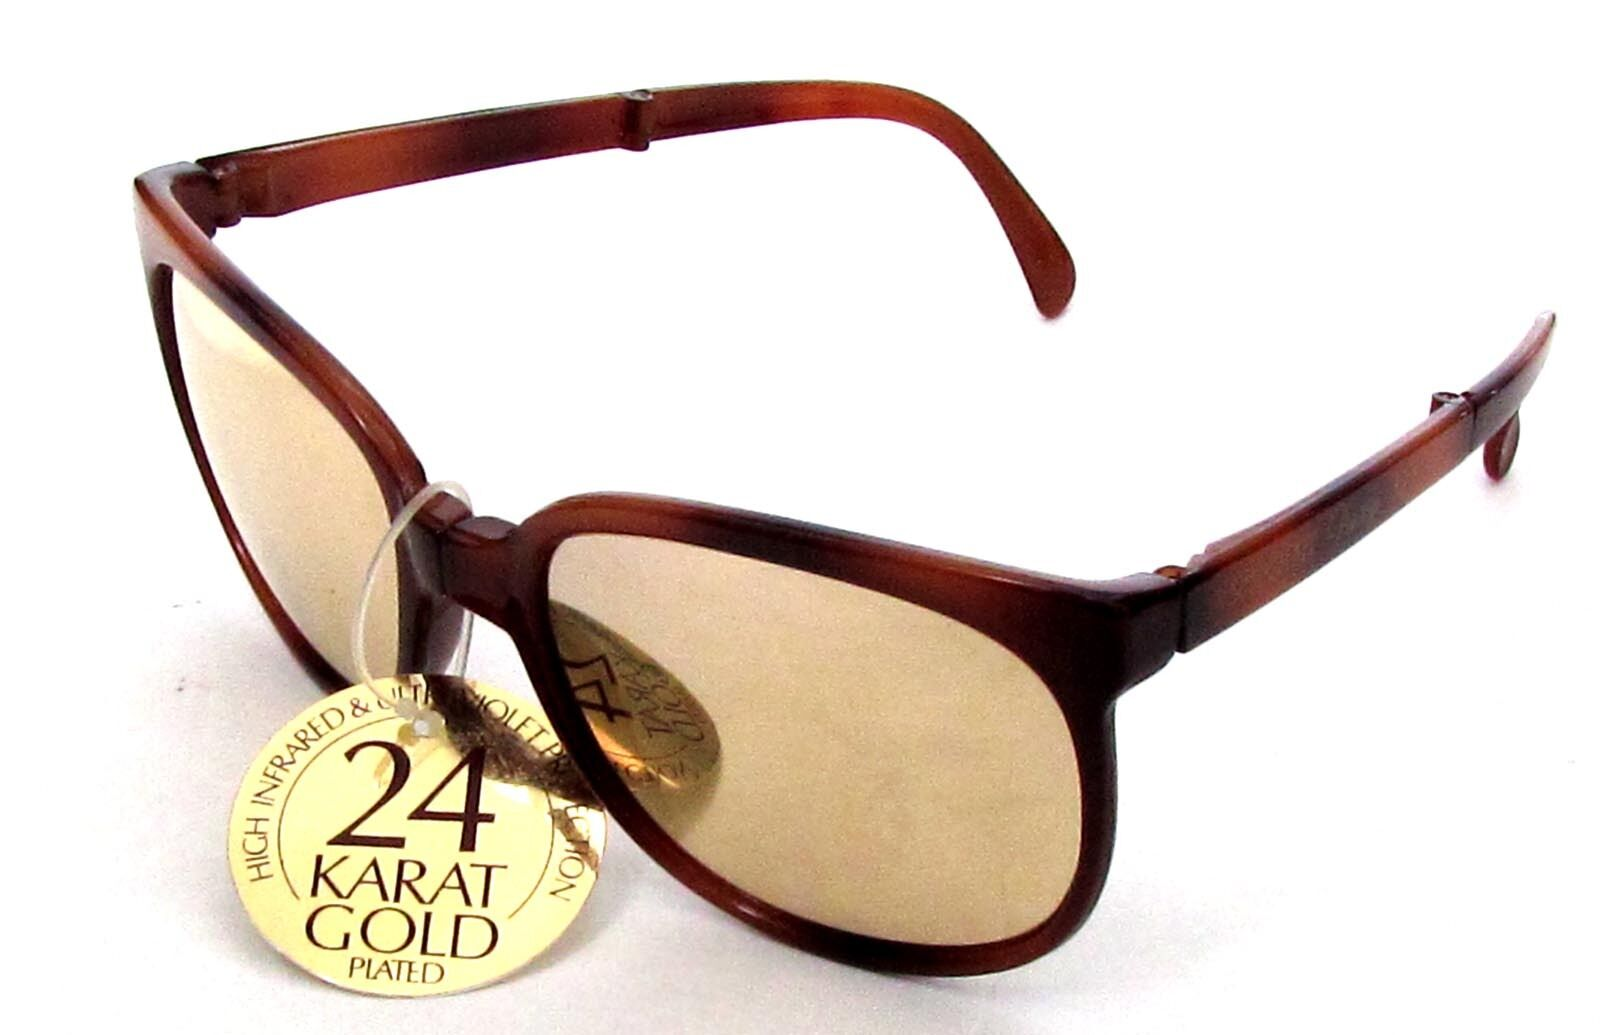 Sunglasses SUNPOCKET PRESTIGE Havana Light Lens Silvered Gold Vintage